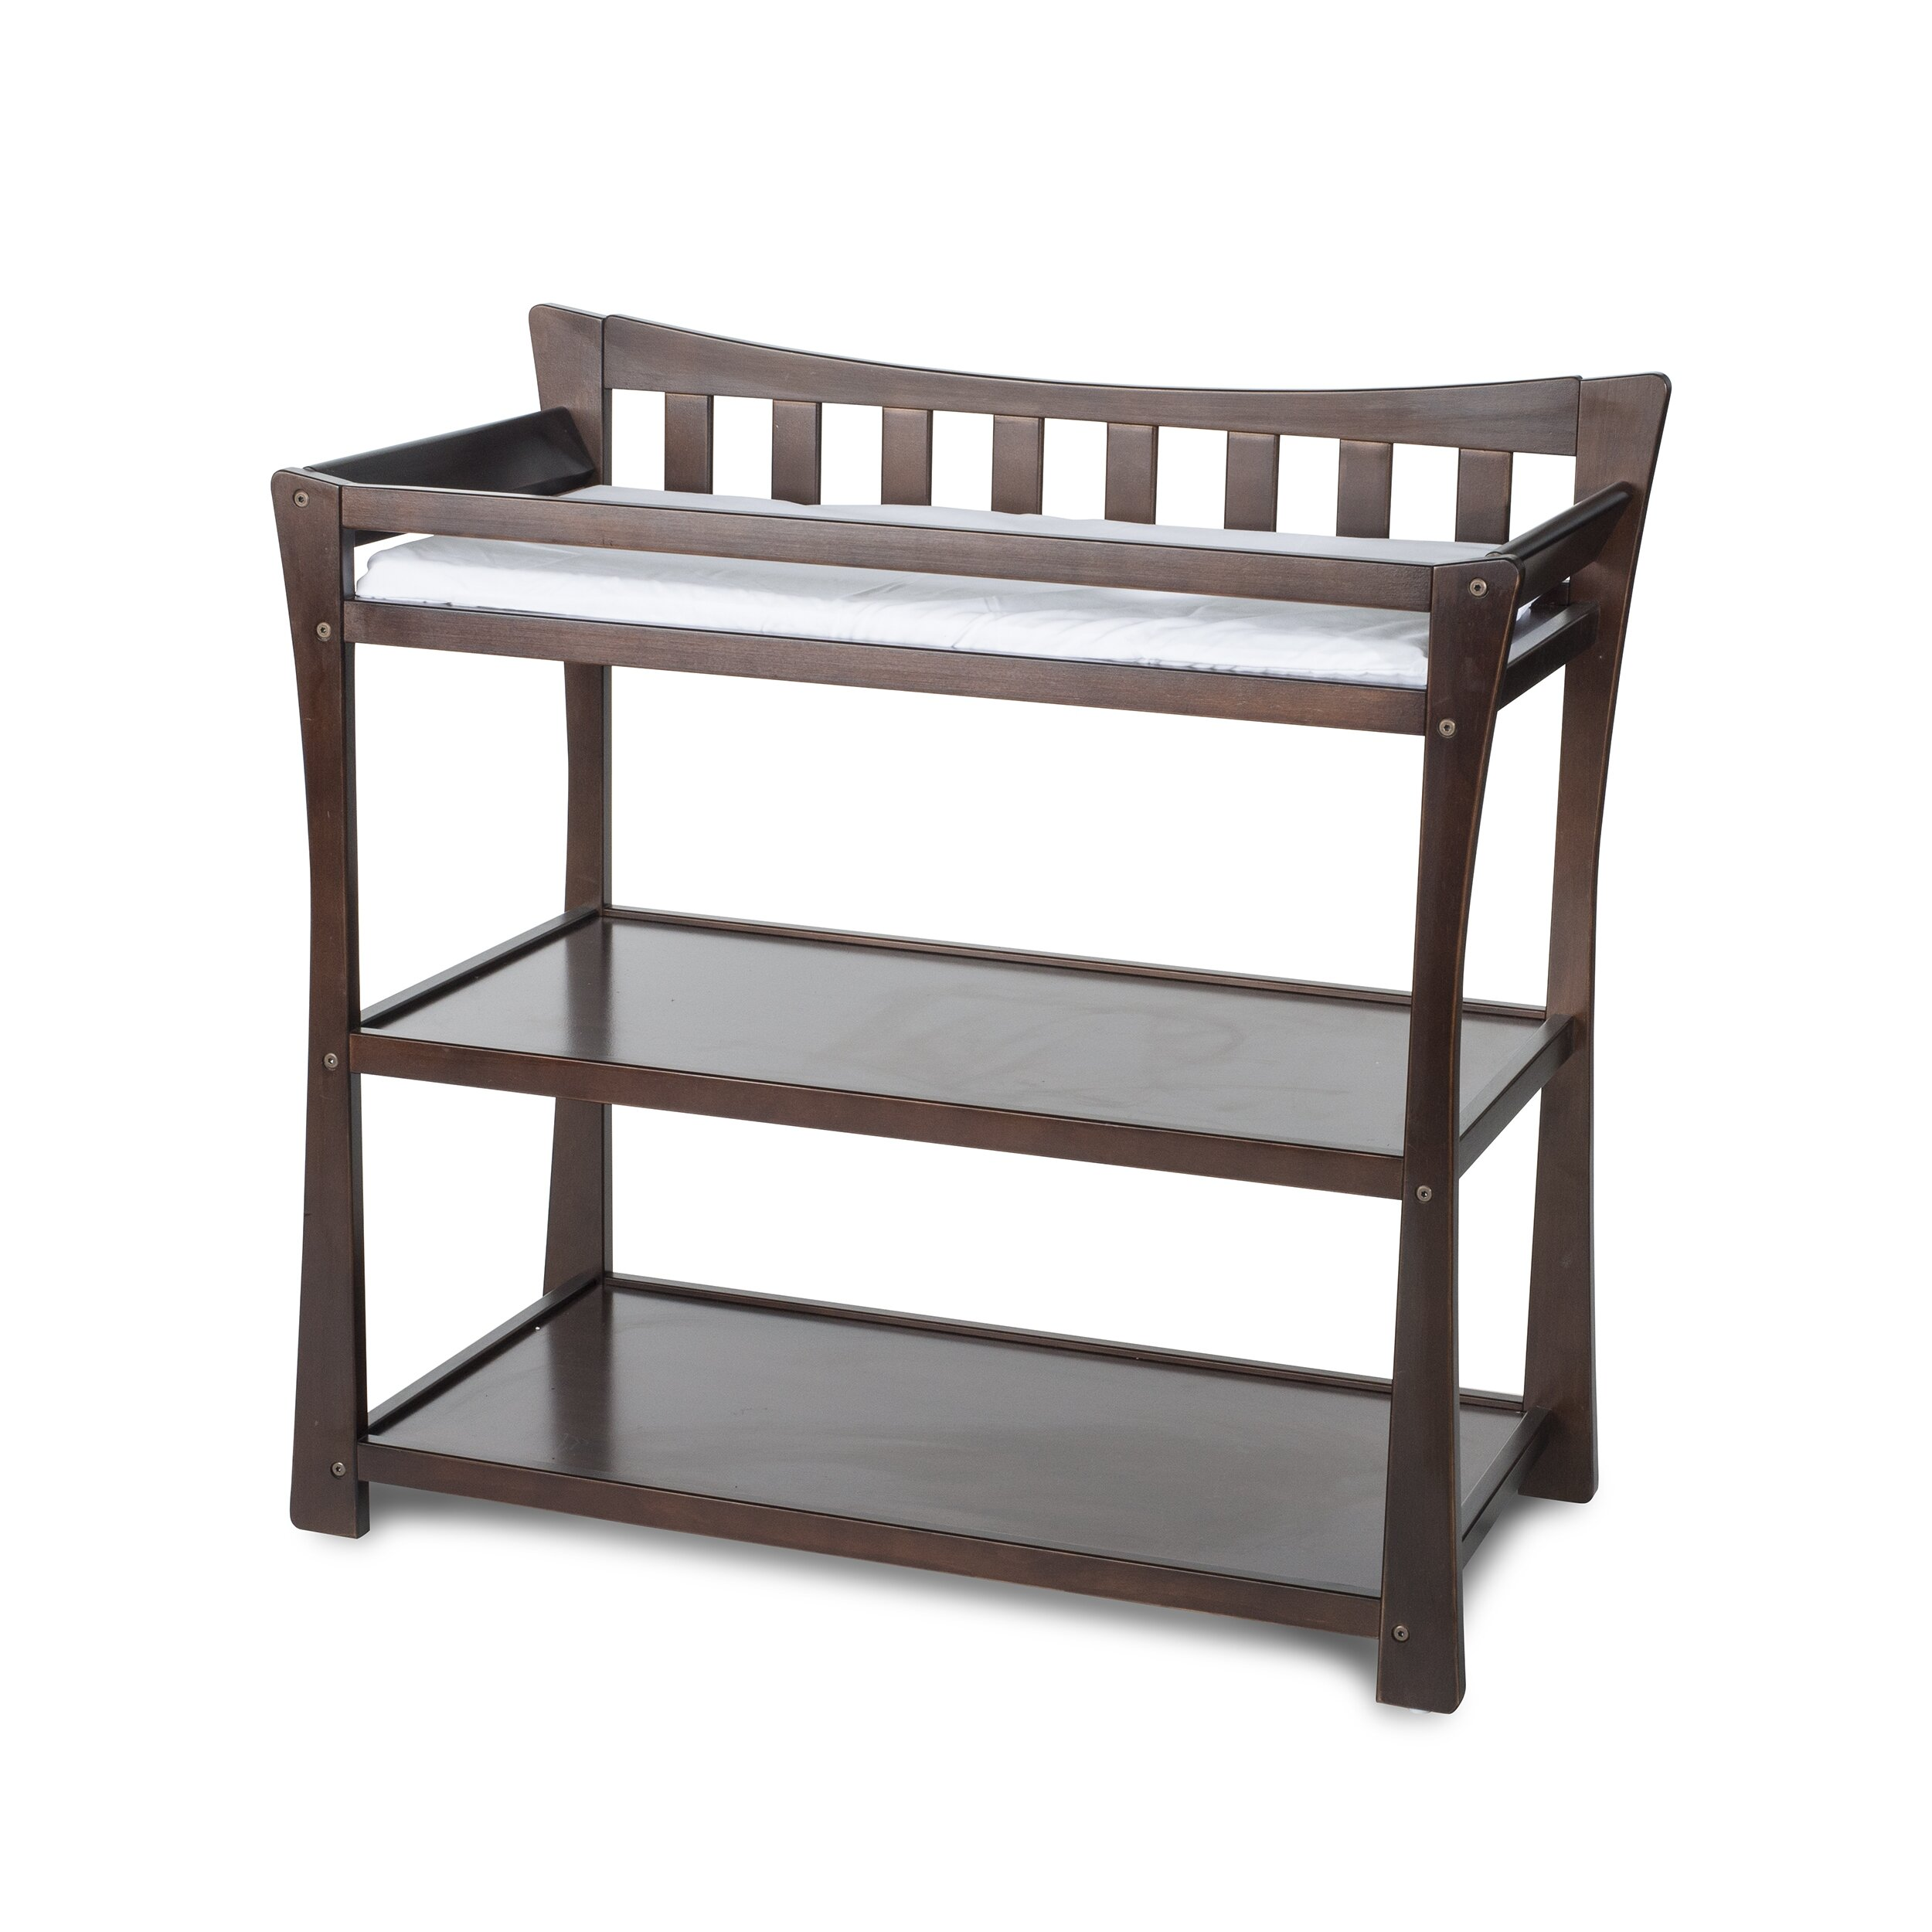 Child craft parisian dressing table reviews wayfair for Child craft changing table